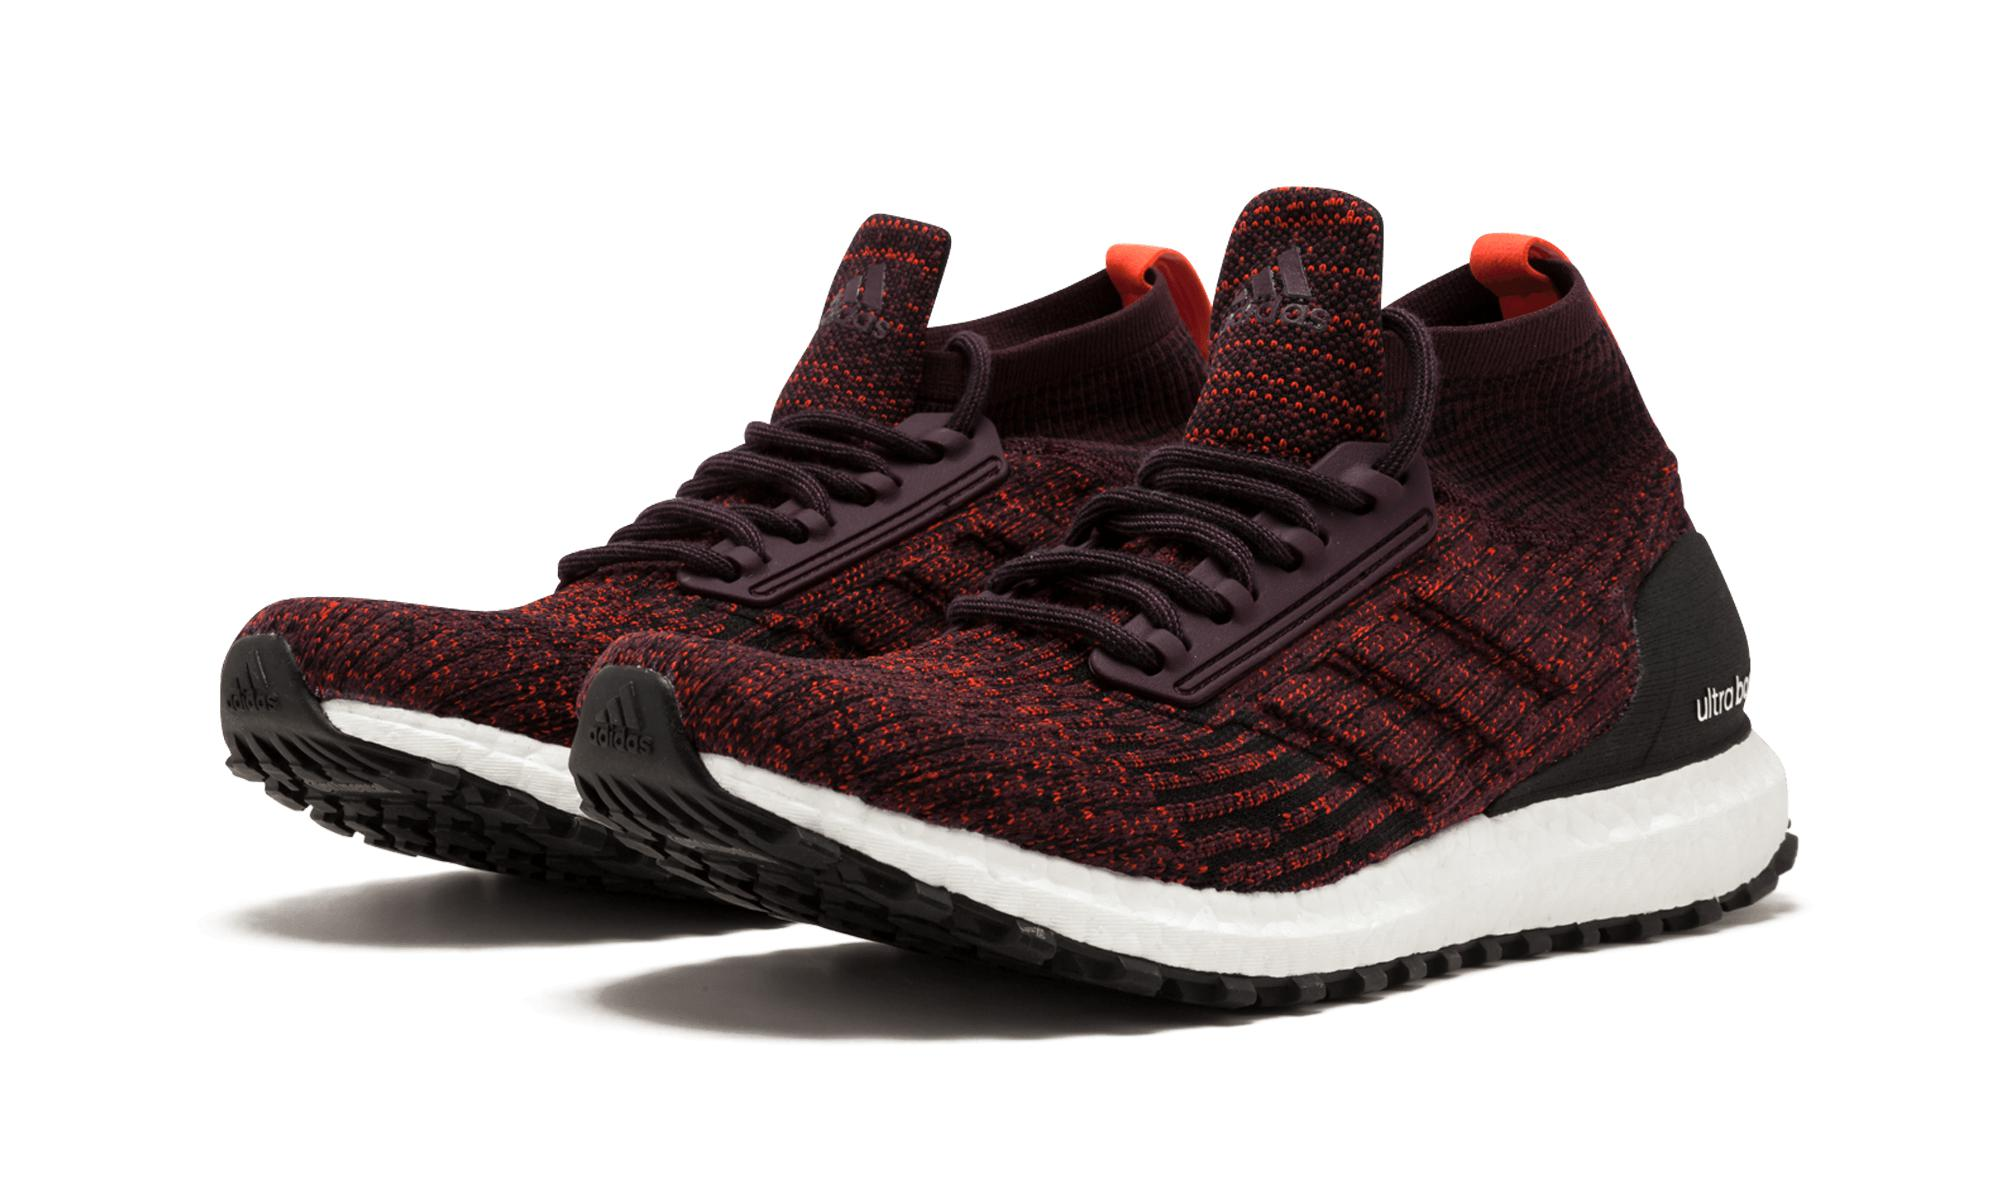 e24f65759ab0a Adidas - Multicolor Ultraboost All Terrain for Men - Lyst. View fullscreen